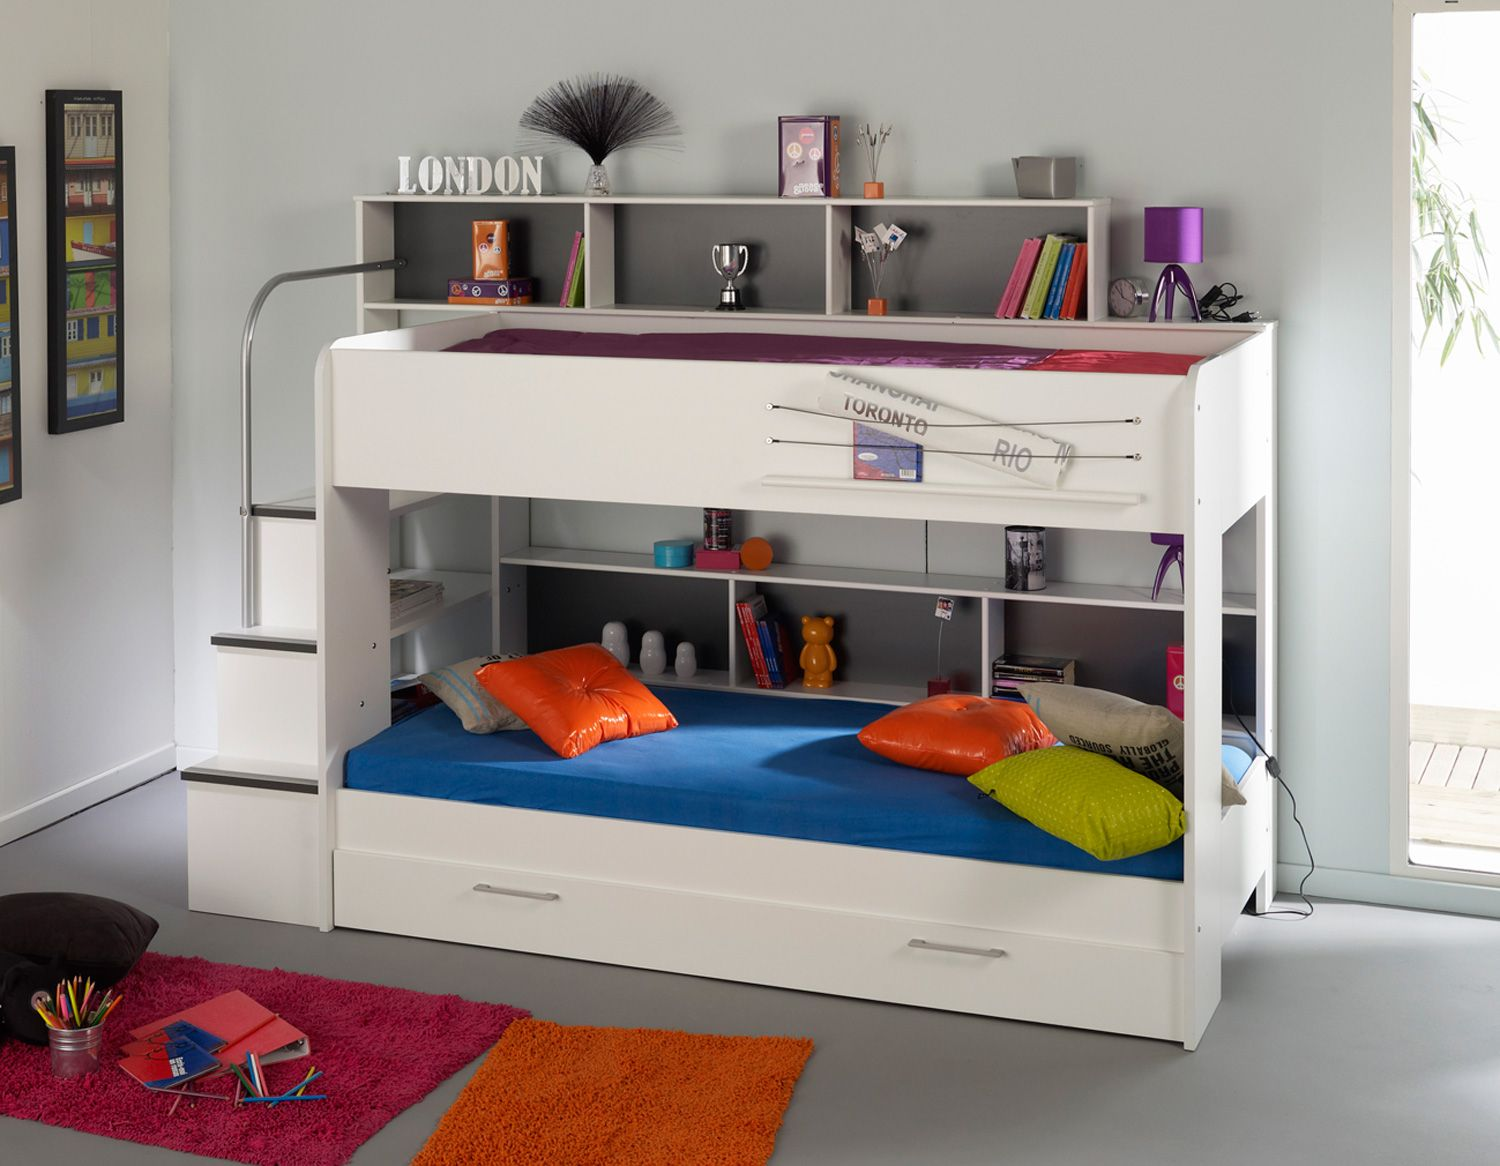 Small Bunkbeds 30 space saving beds for small rooms | bunk bed, bunk bed designs